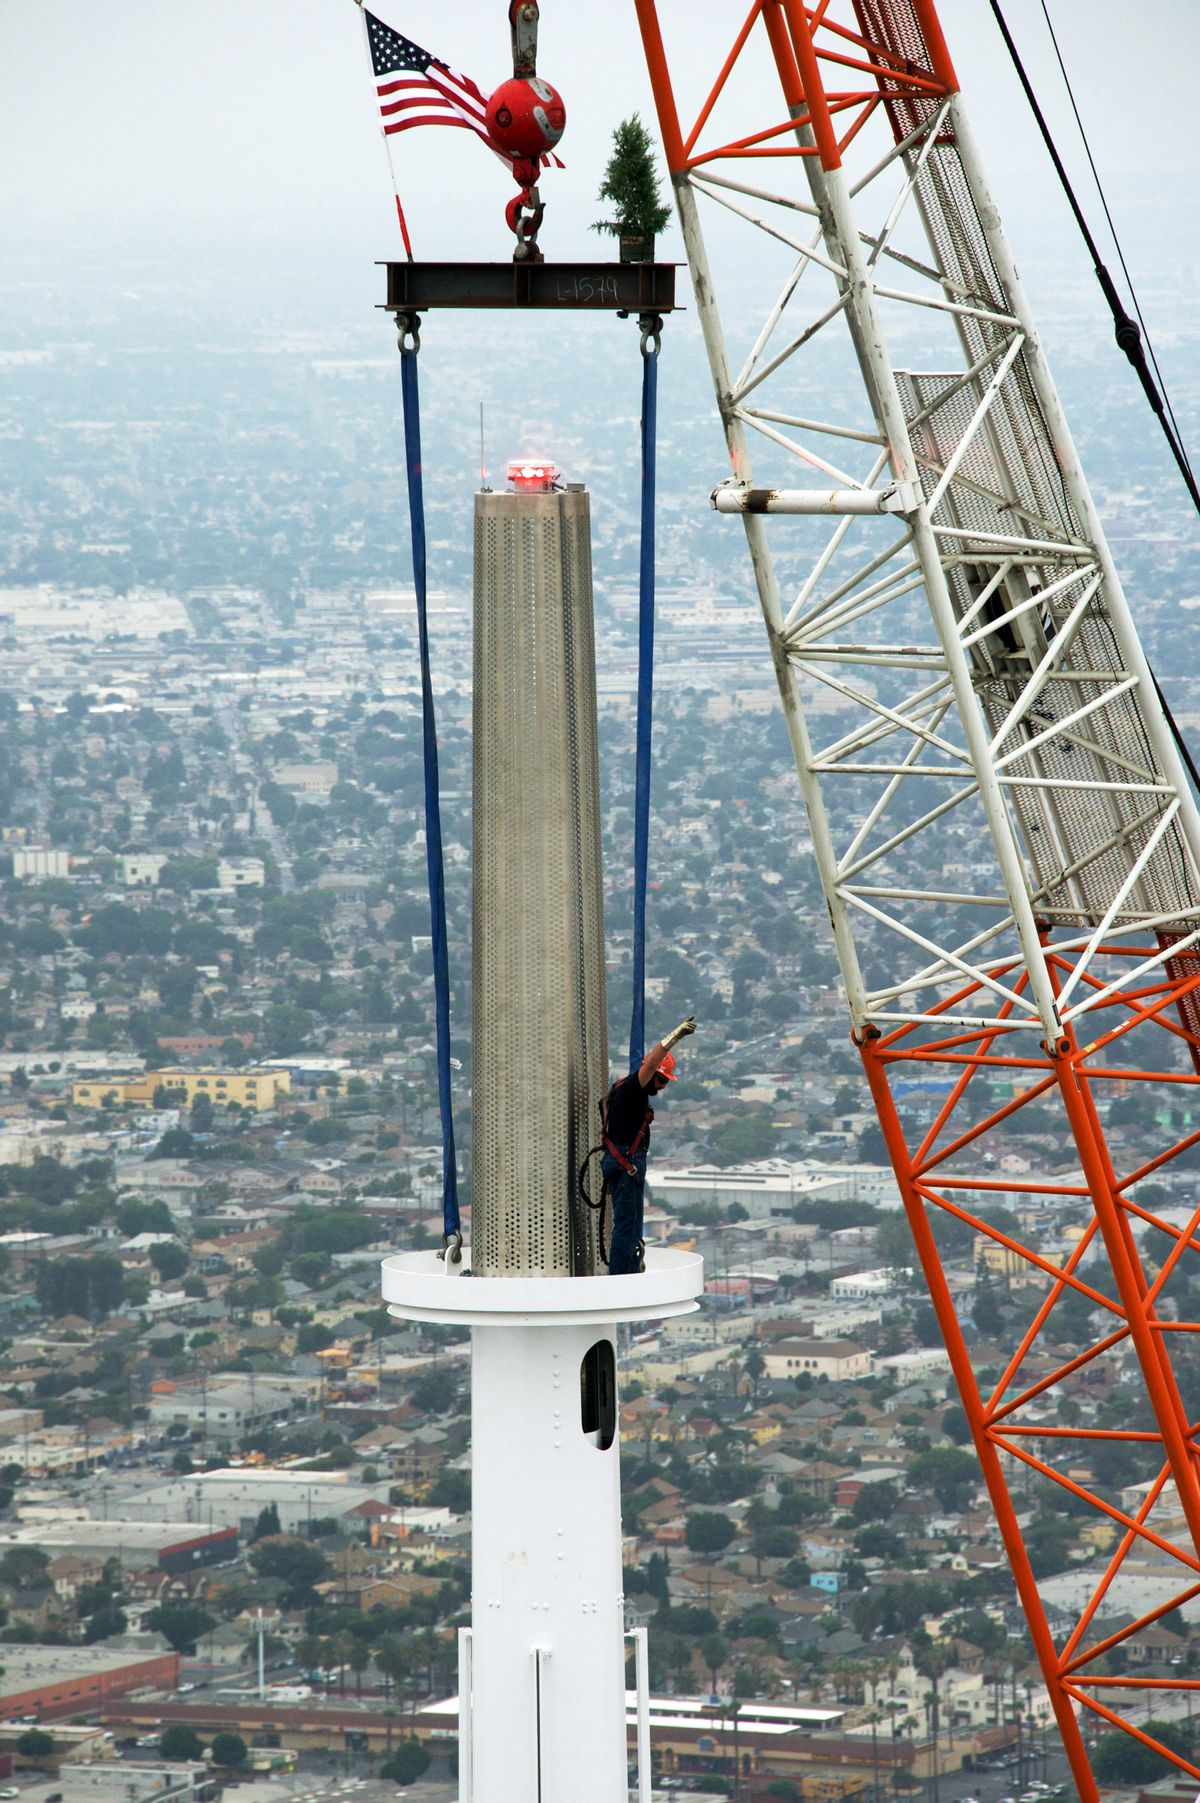 In this photo provided by the Wilshire Grand Center, a worker signals as a crane hoists a beacon into place atop a 160-foot spire on the Wilshire Grand Tower early Saturday, Sept. 3, 2016, in downtown Los Angeles. The 10-ton spire makes the structure the tallest building west of the Mississippi River. The $1 billion hotel and office complex is scheduled to open next March. (Gary Leonard/Wilshire Grand Center via AP) (AP)